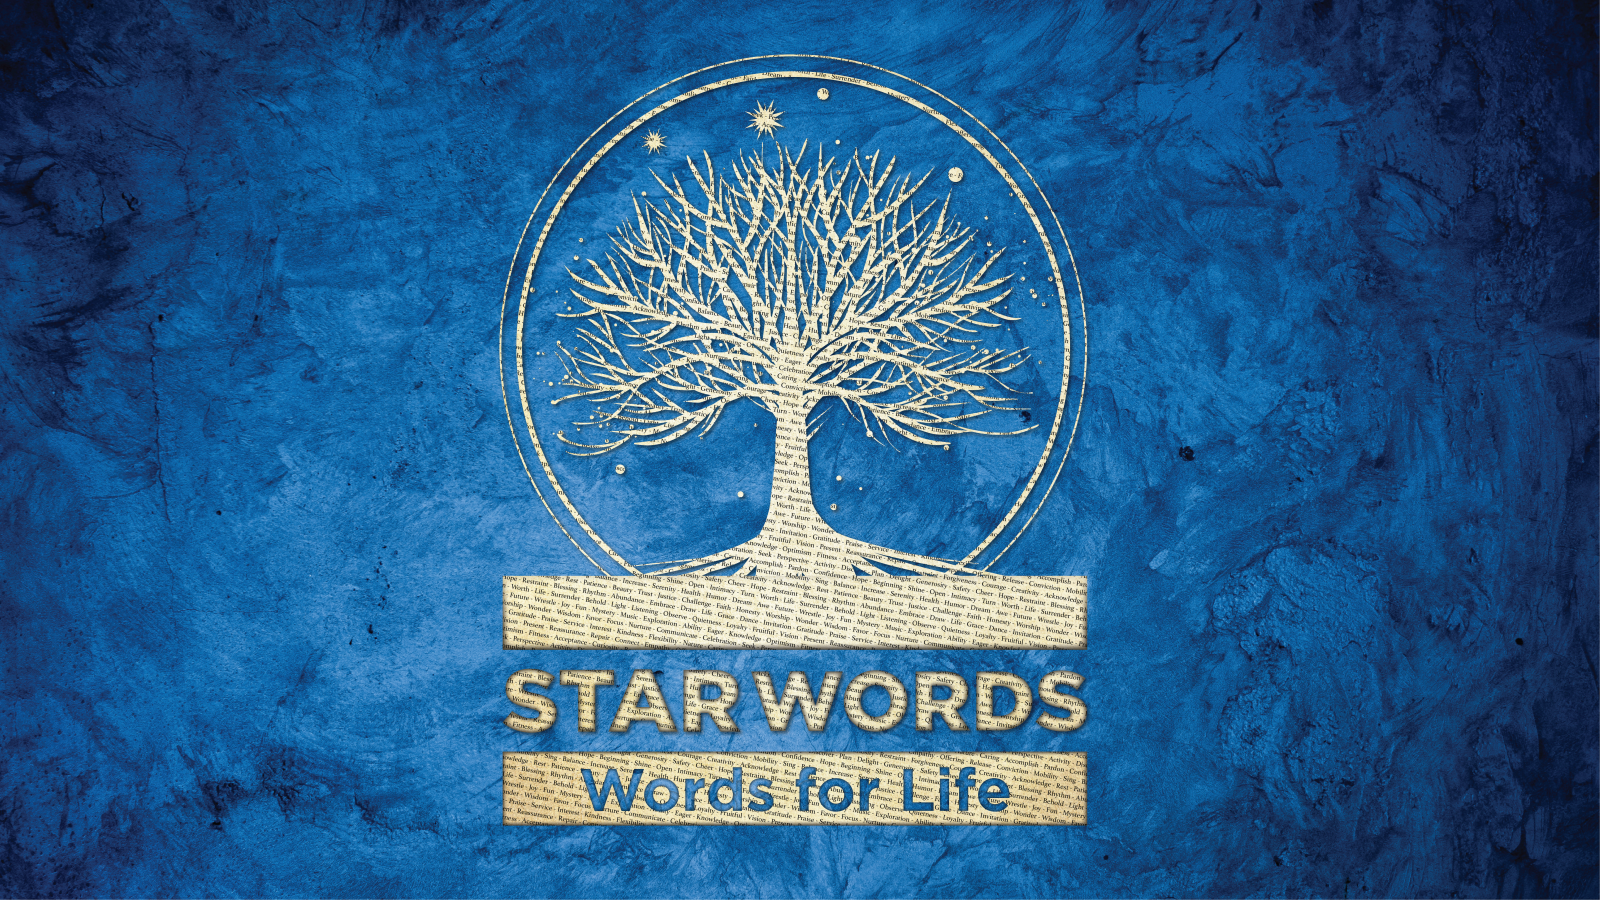 Star Words: Words for Life